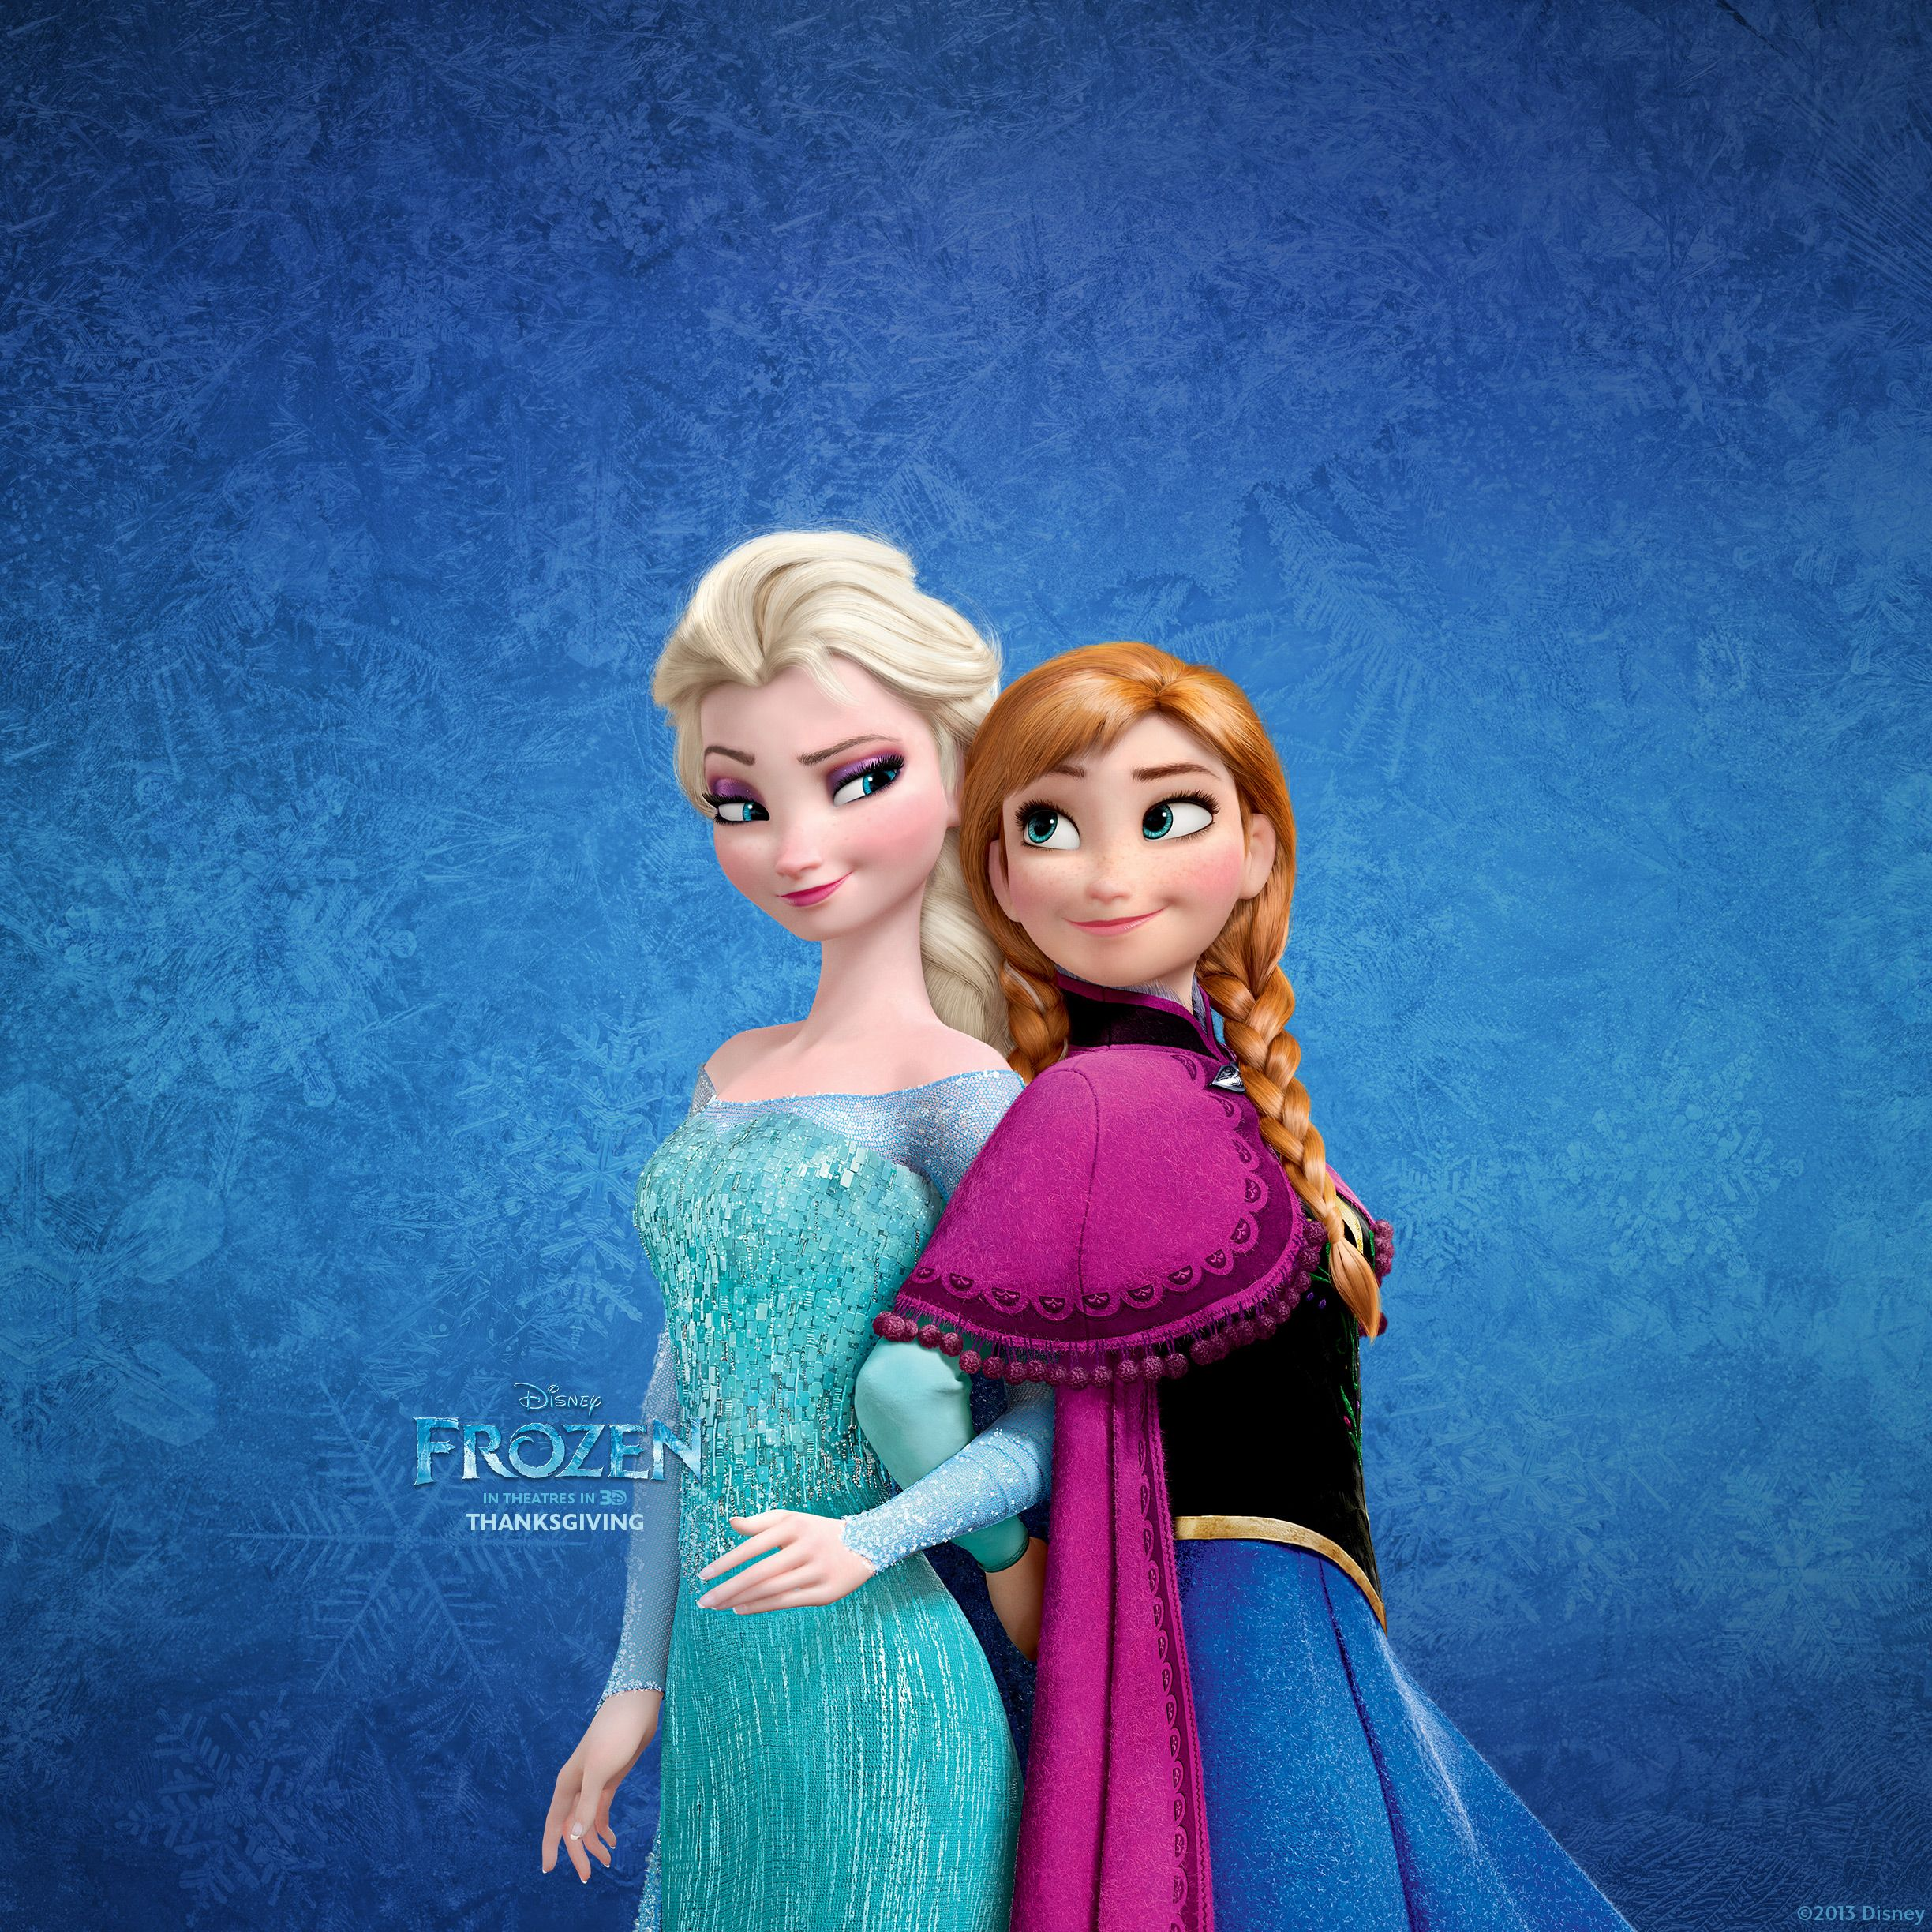 Frozen Elsa And Anna Wallpaper For Ipad Frozen Hd 532850 Hd